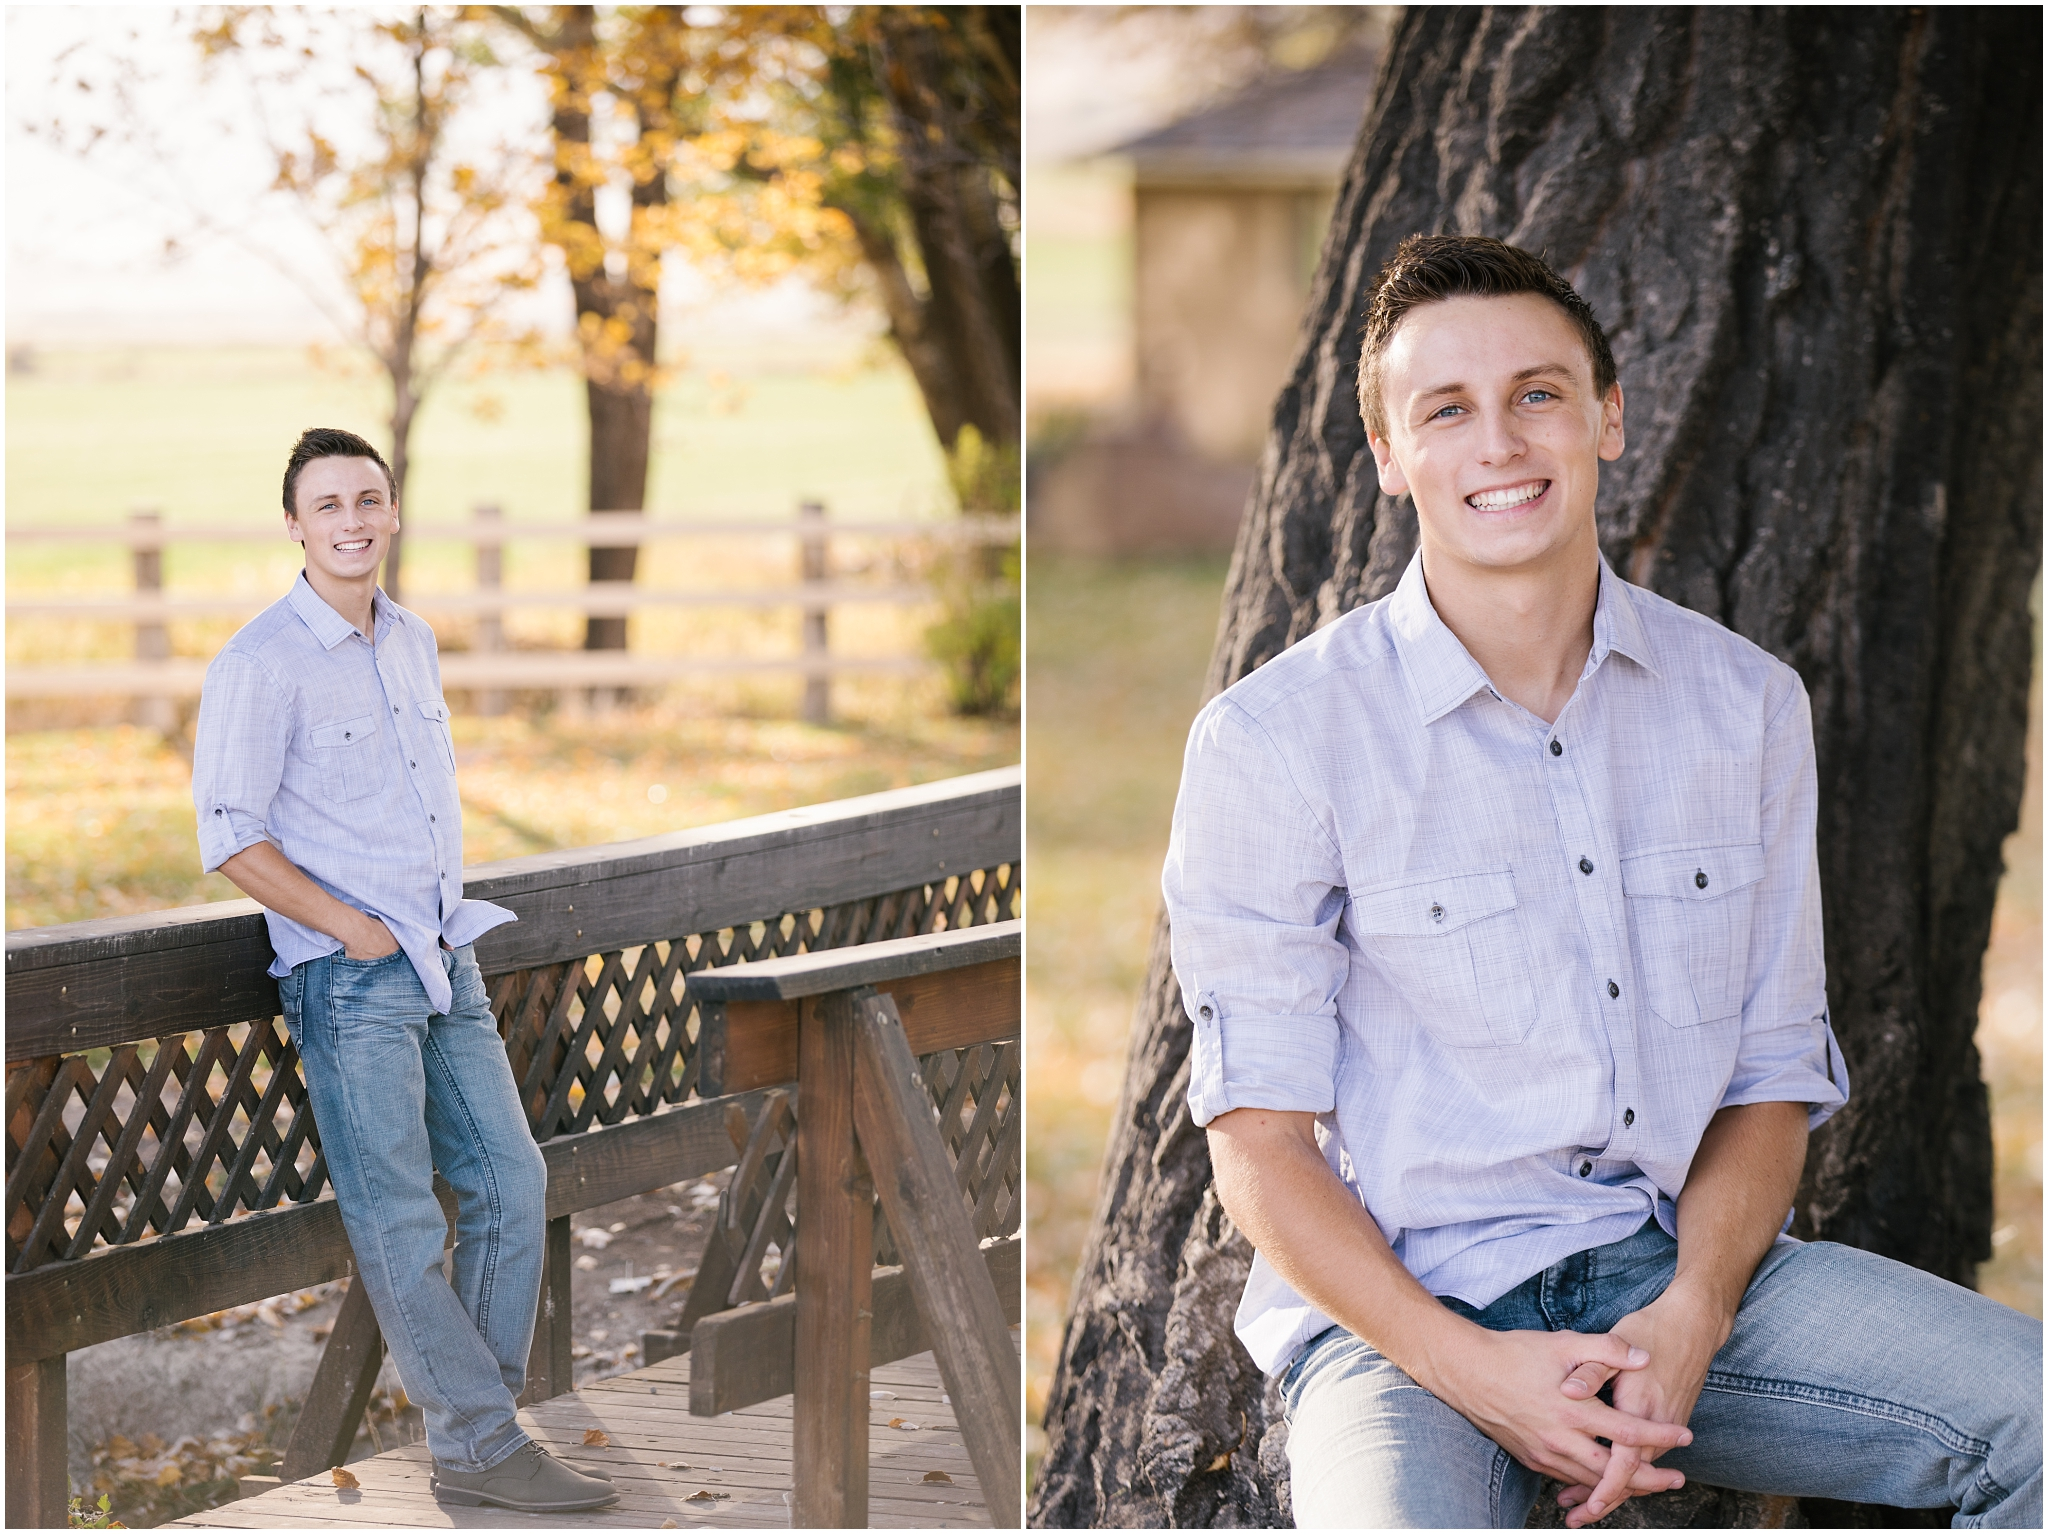 Marcus--55_Lizzie-B-Imagery-Utah-Senior-Photographer-Salt-Lake-City-Park-City-Utah-County.jpg